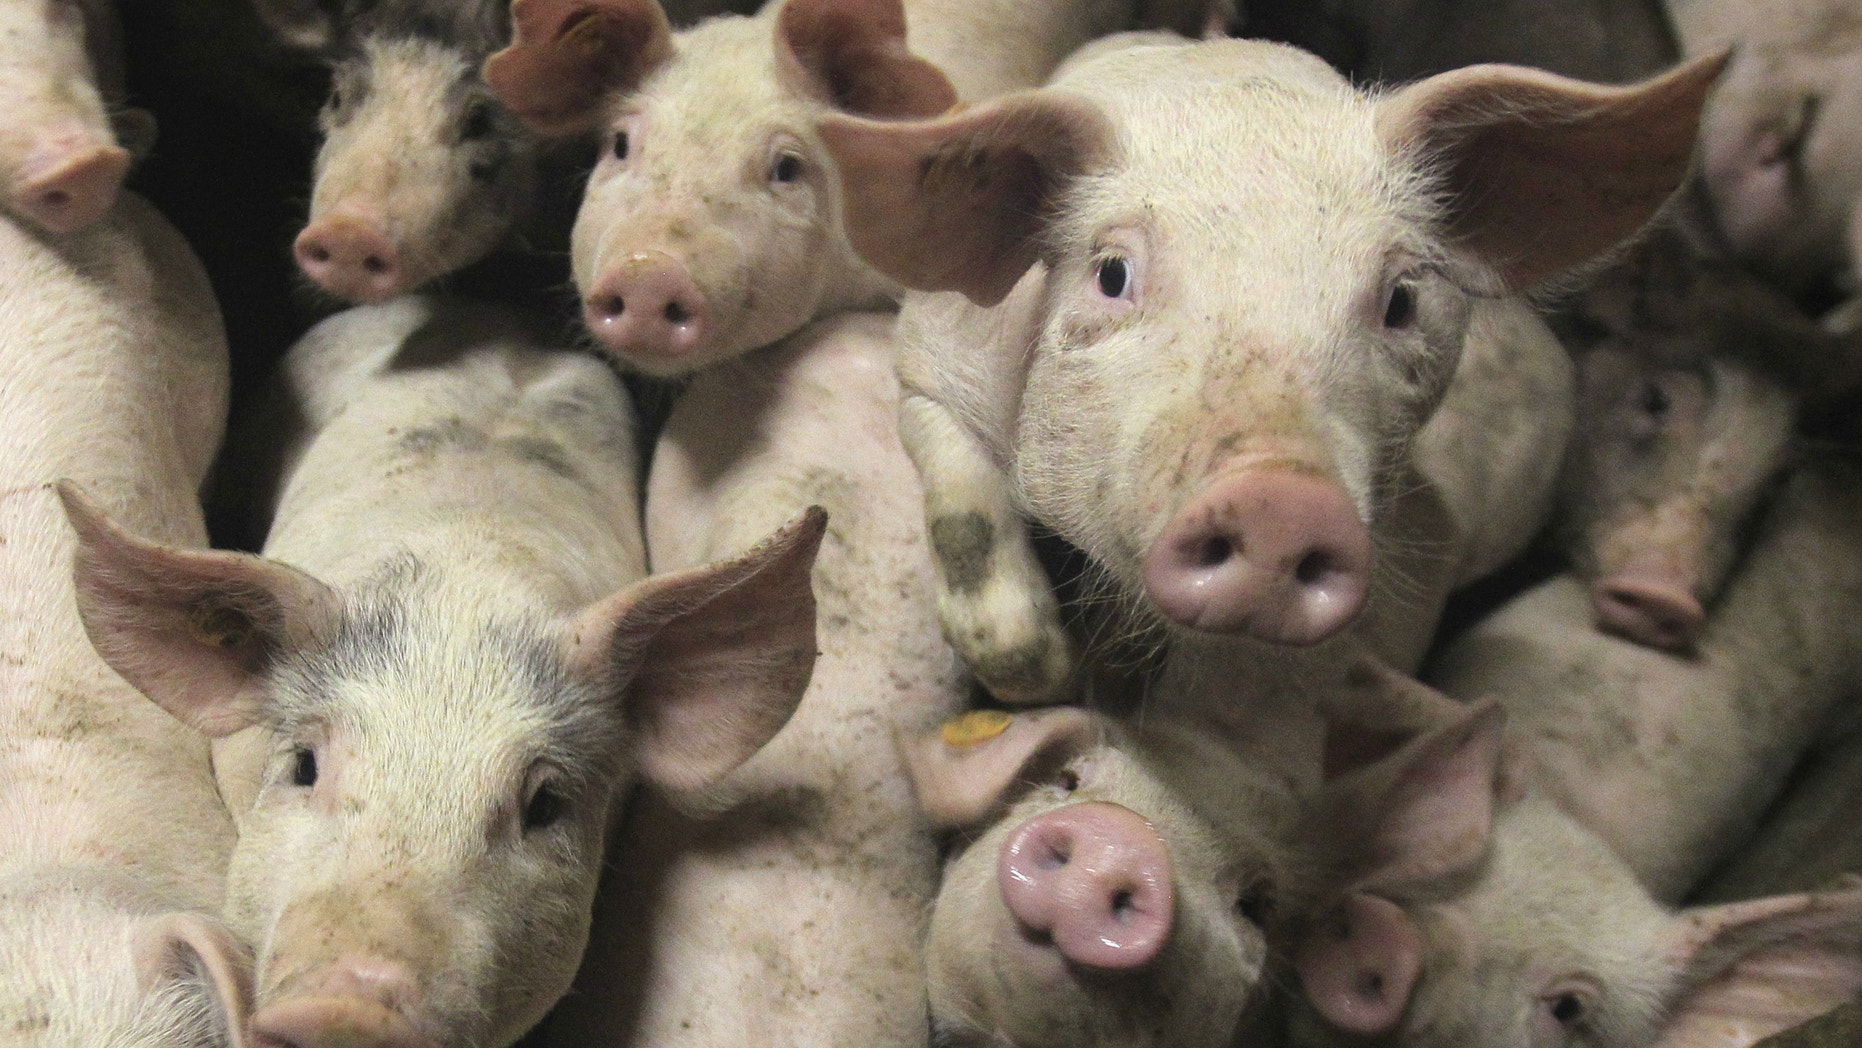 Pigs attacked a woman in India